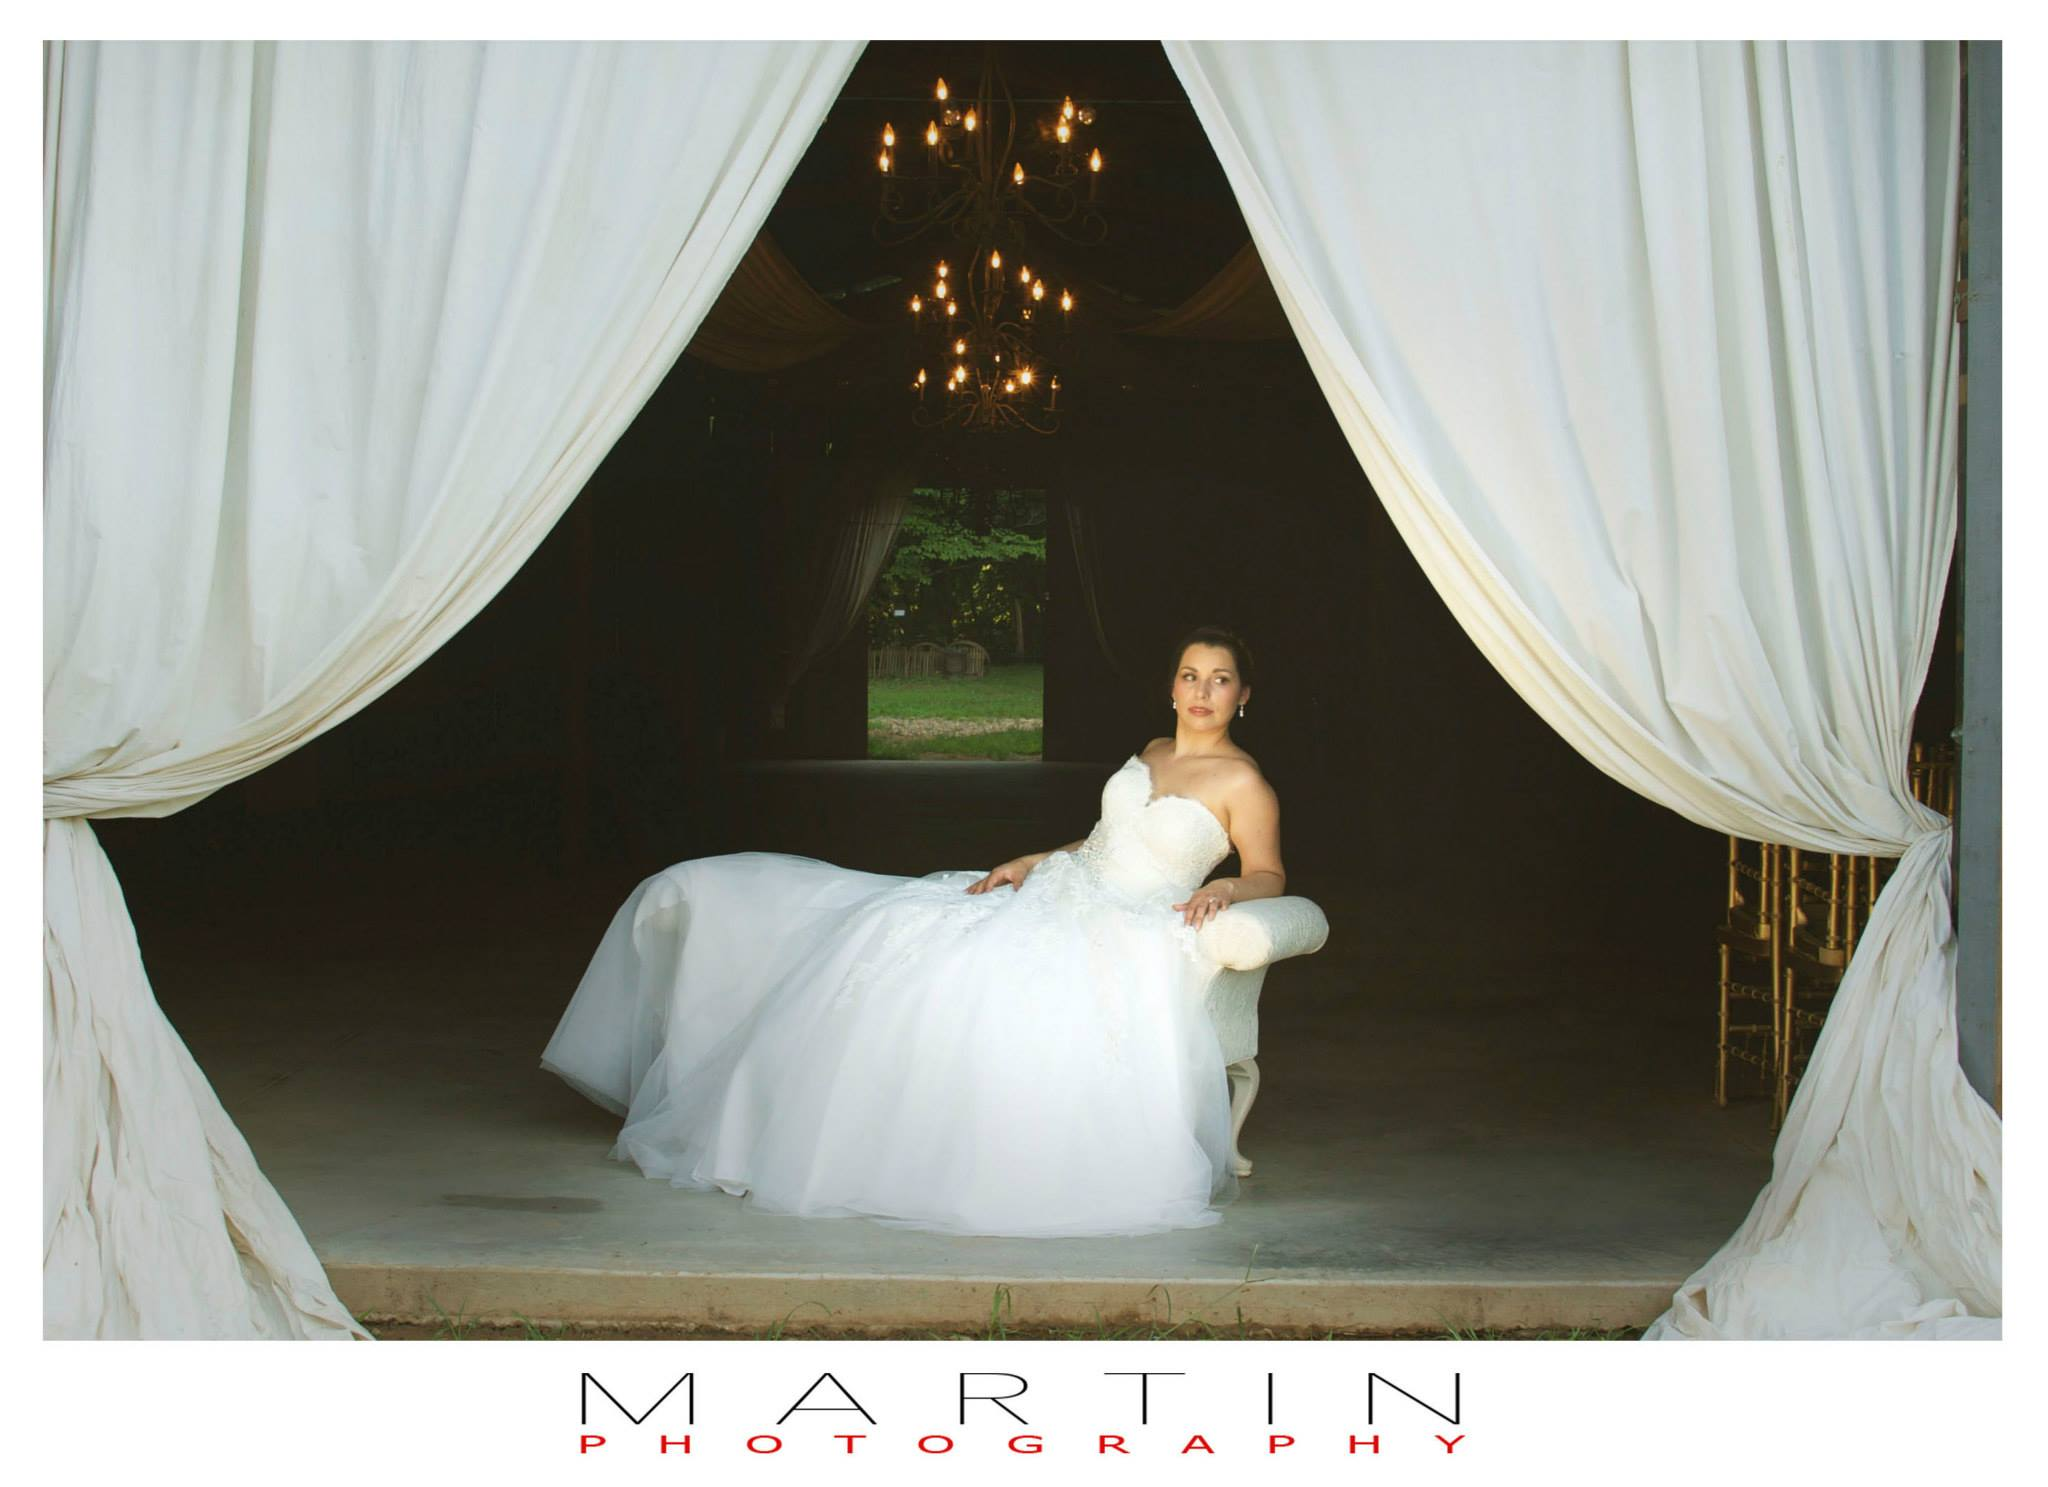 Martin's Photography , from  Monica 's bridal session.